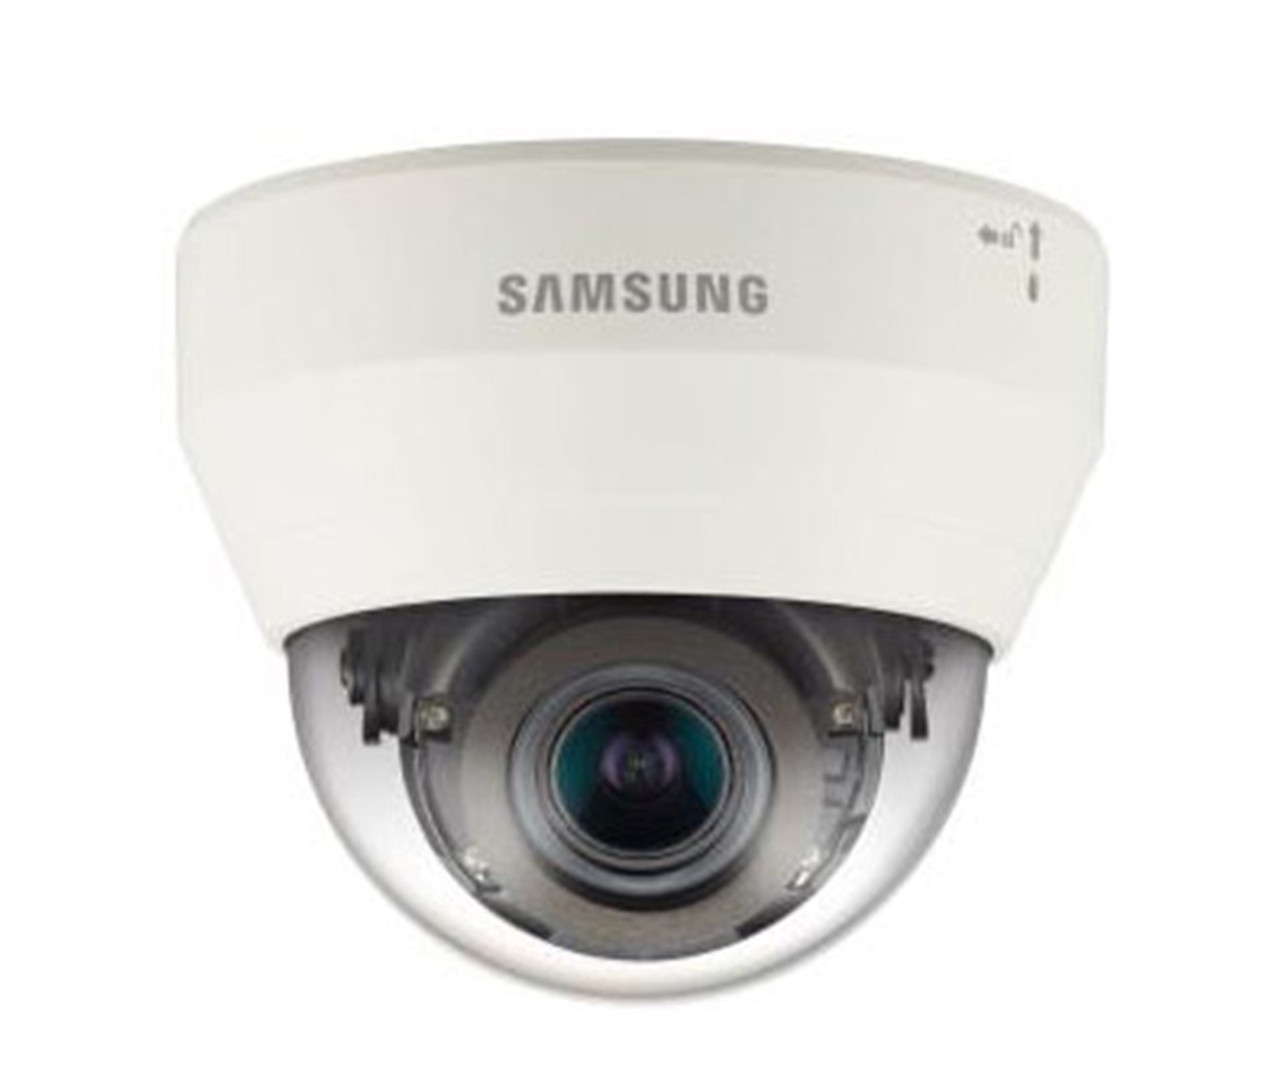 Samsung QND 6070R 2MP Indoor Dome IP Security Camera